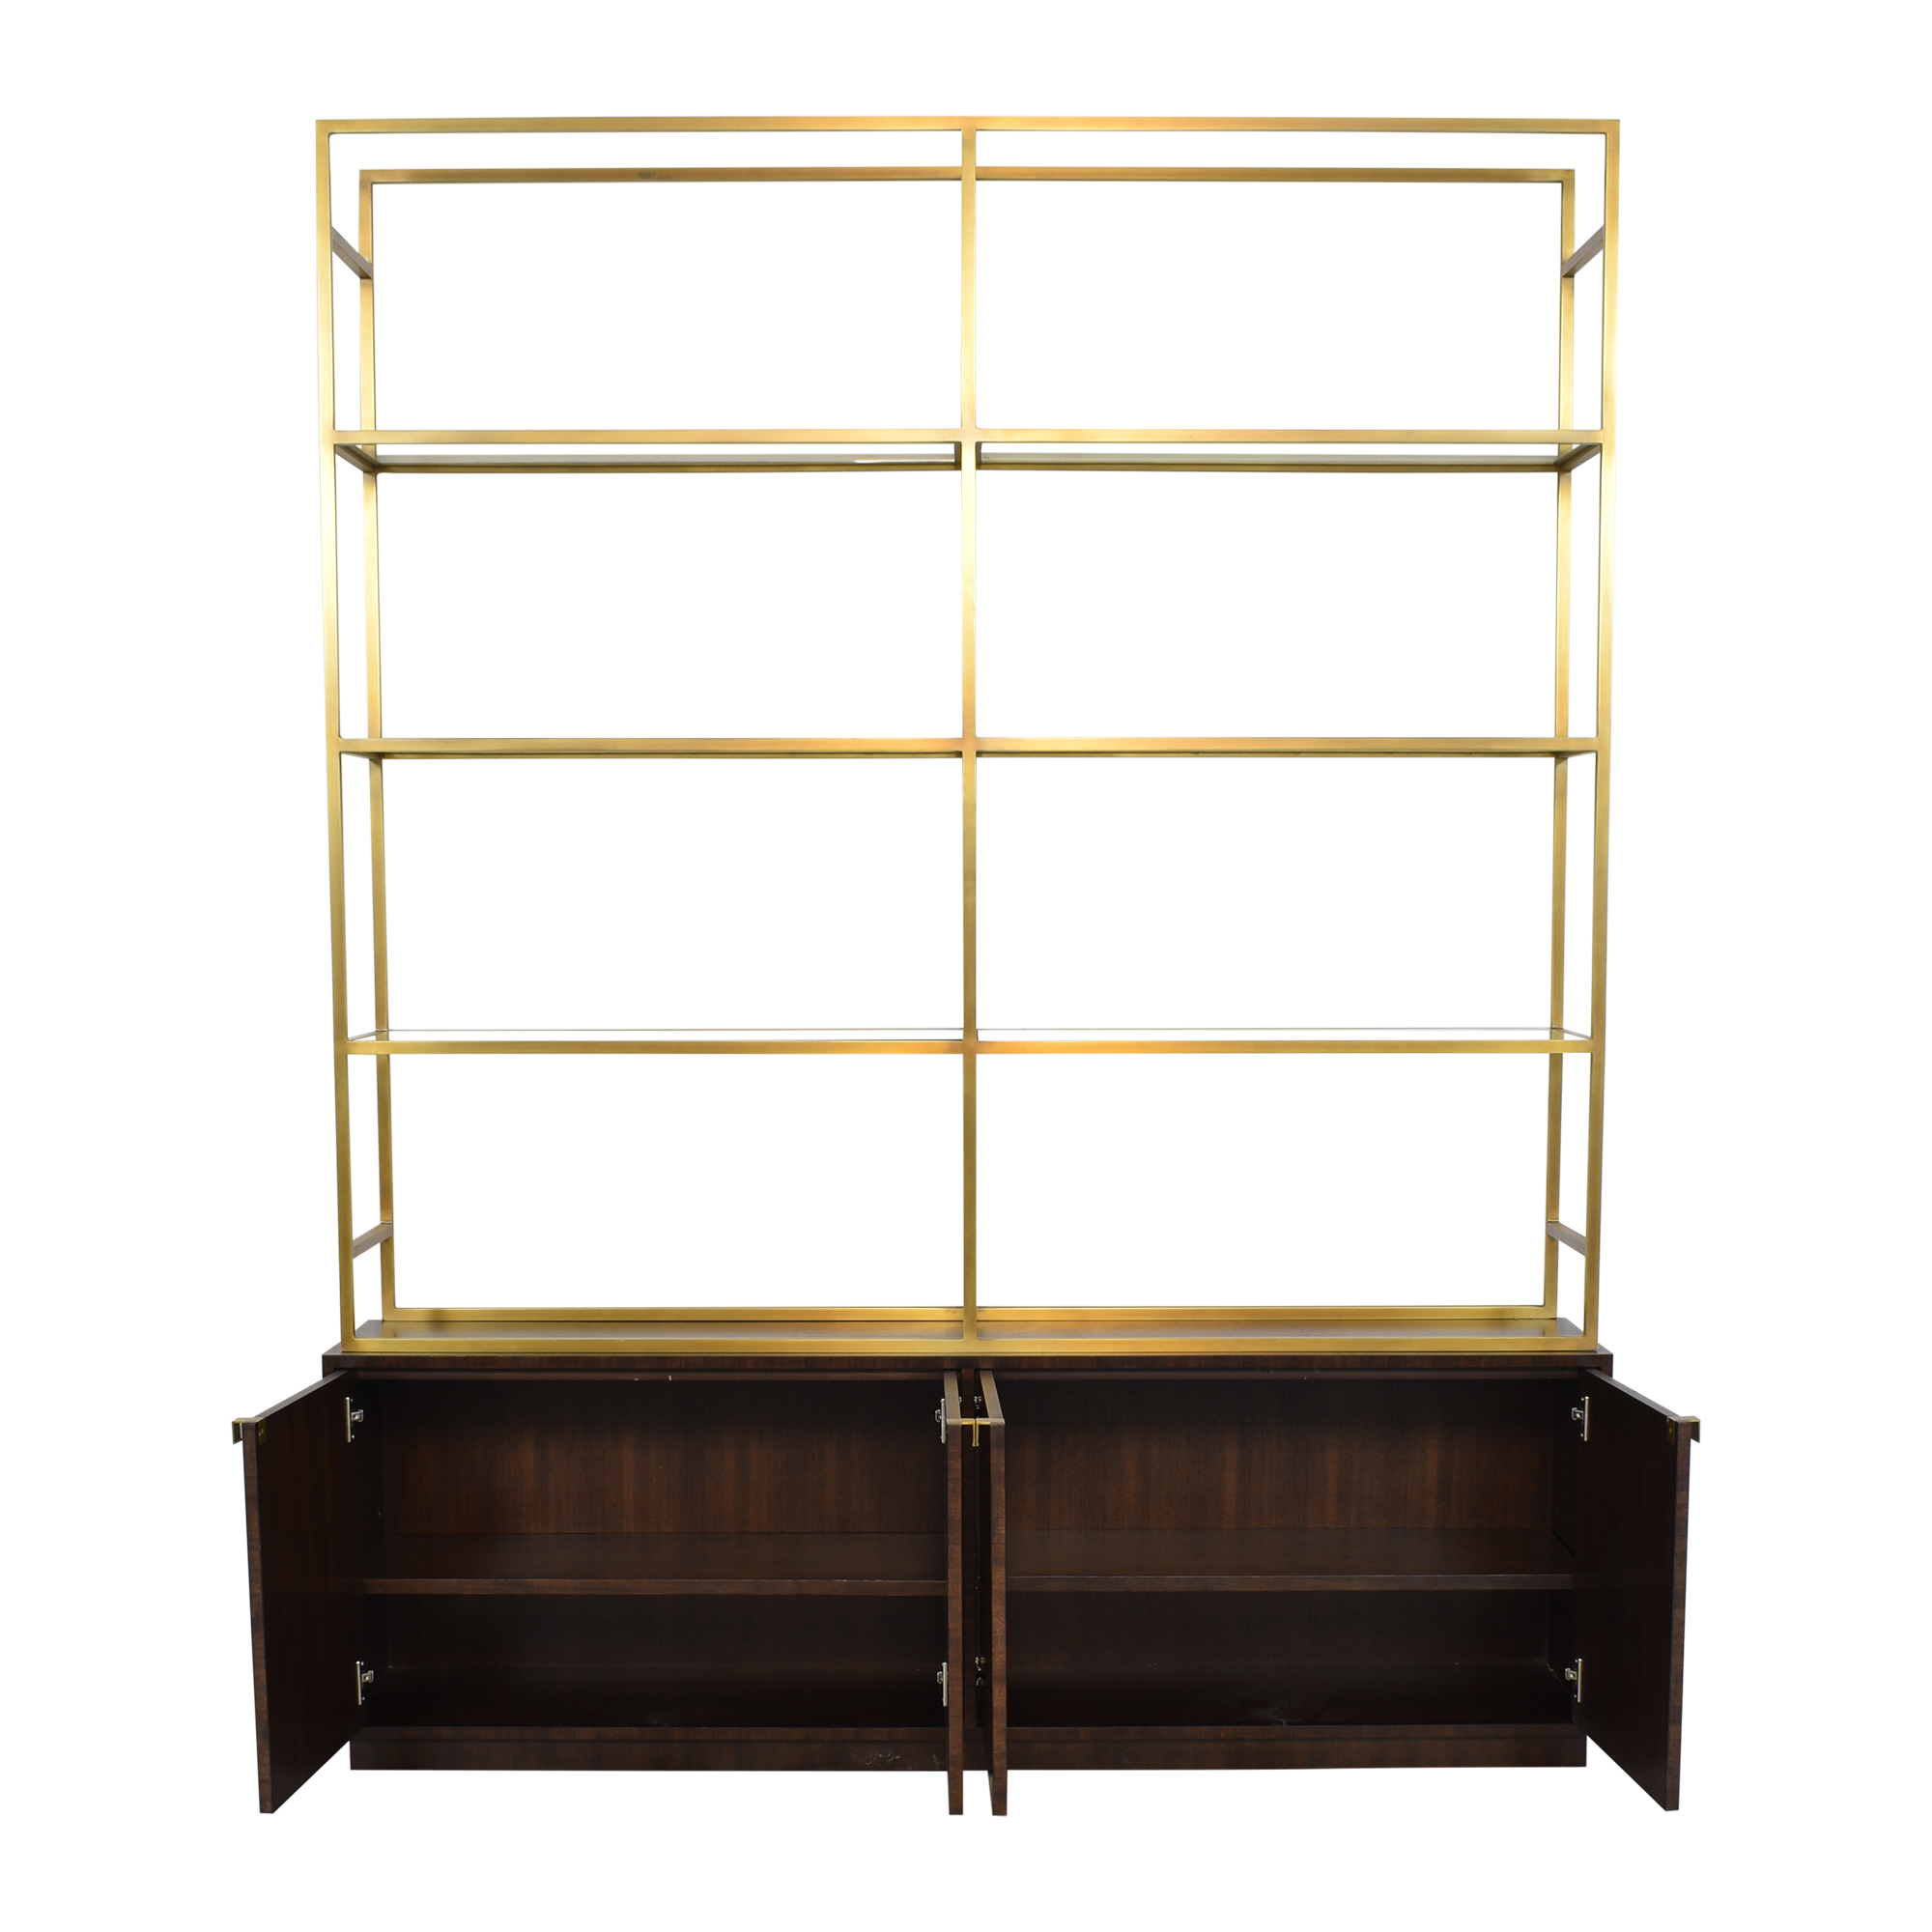 Restoration Hardware Restoration Hardware Sideboard with Etagere Style Bookcase pa